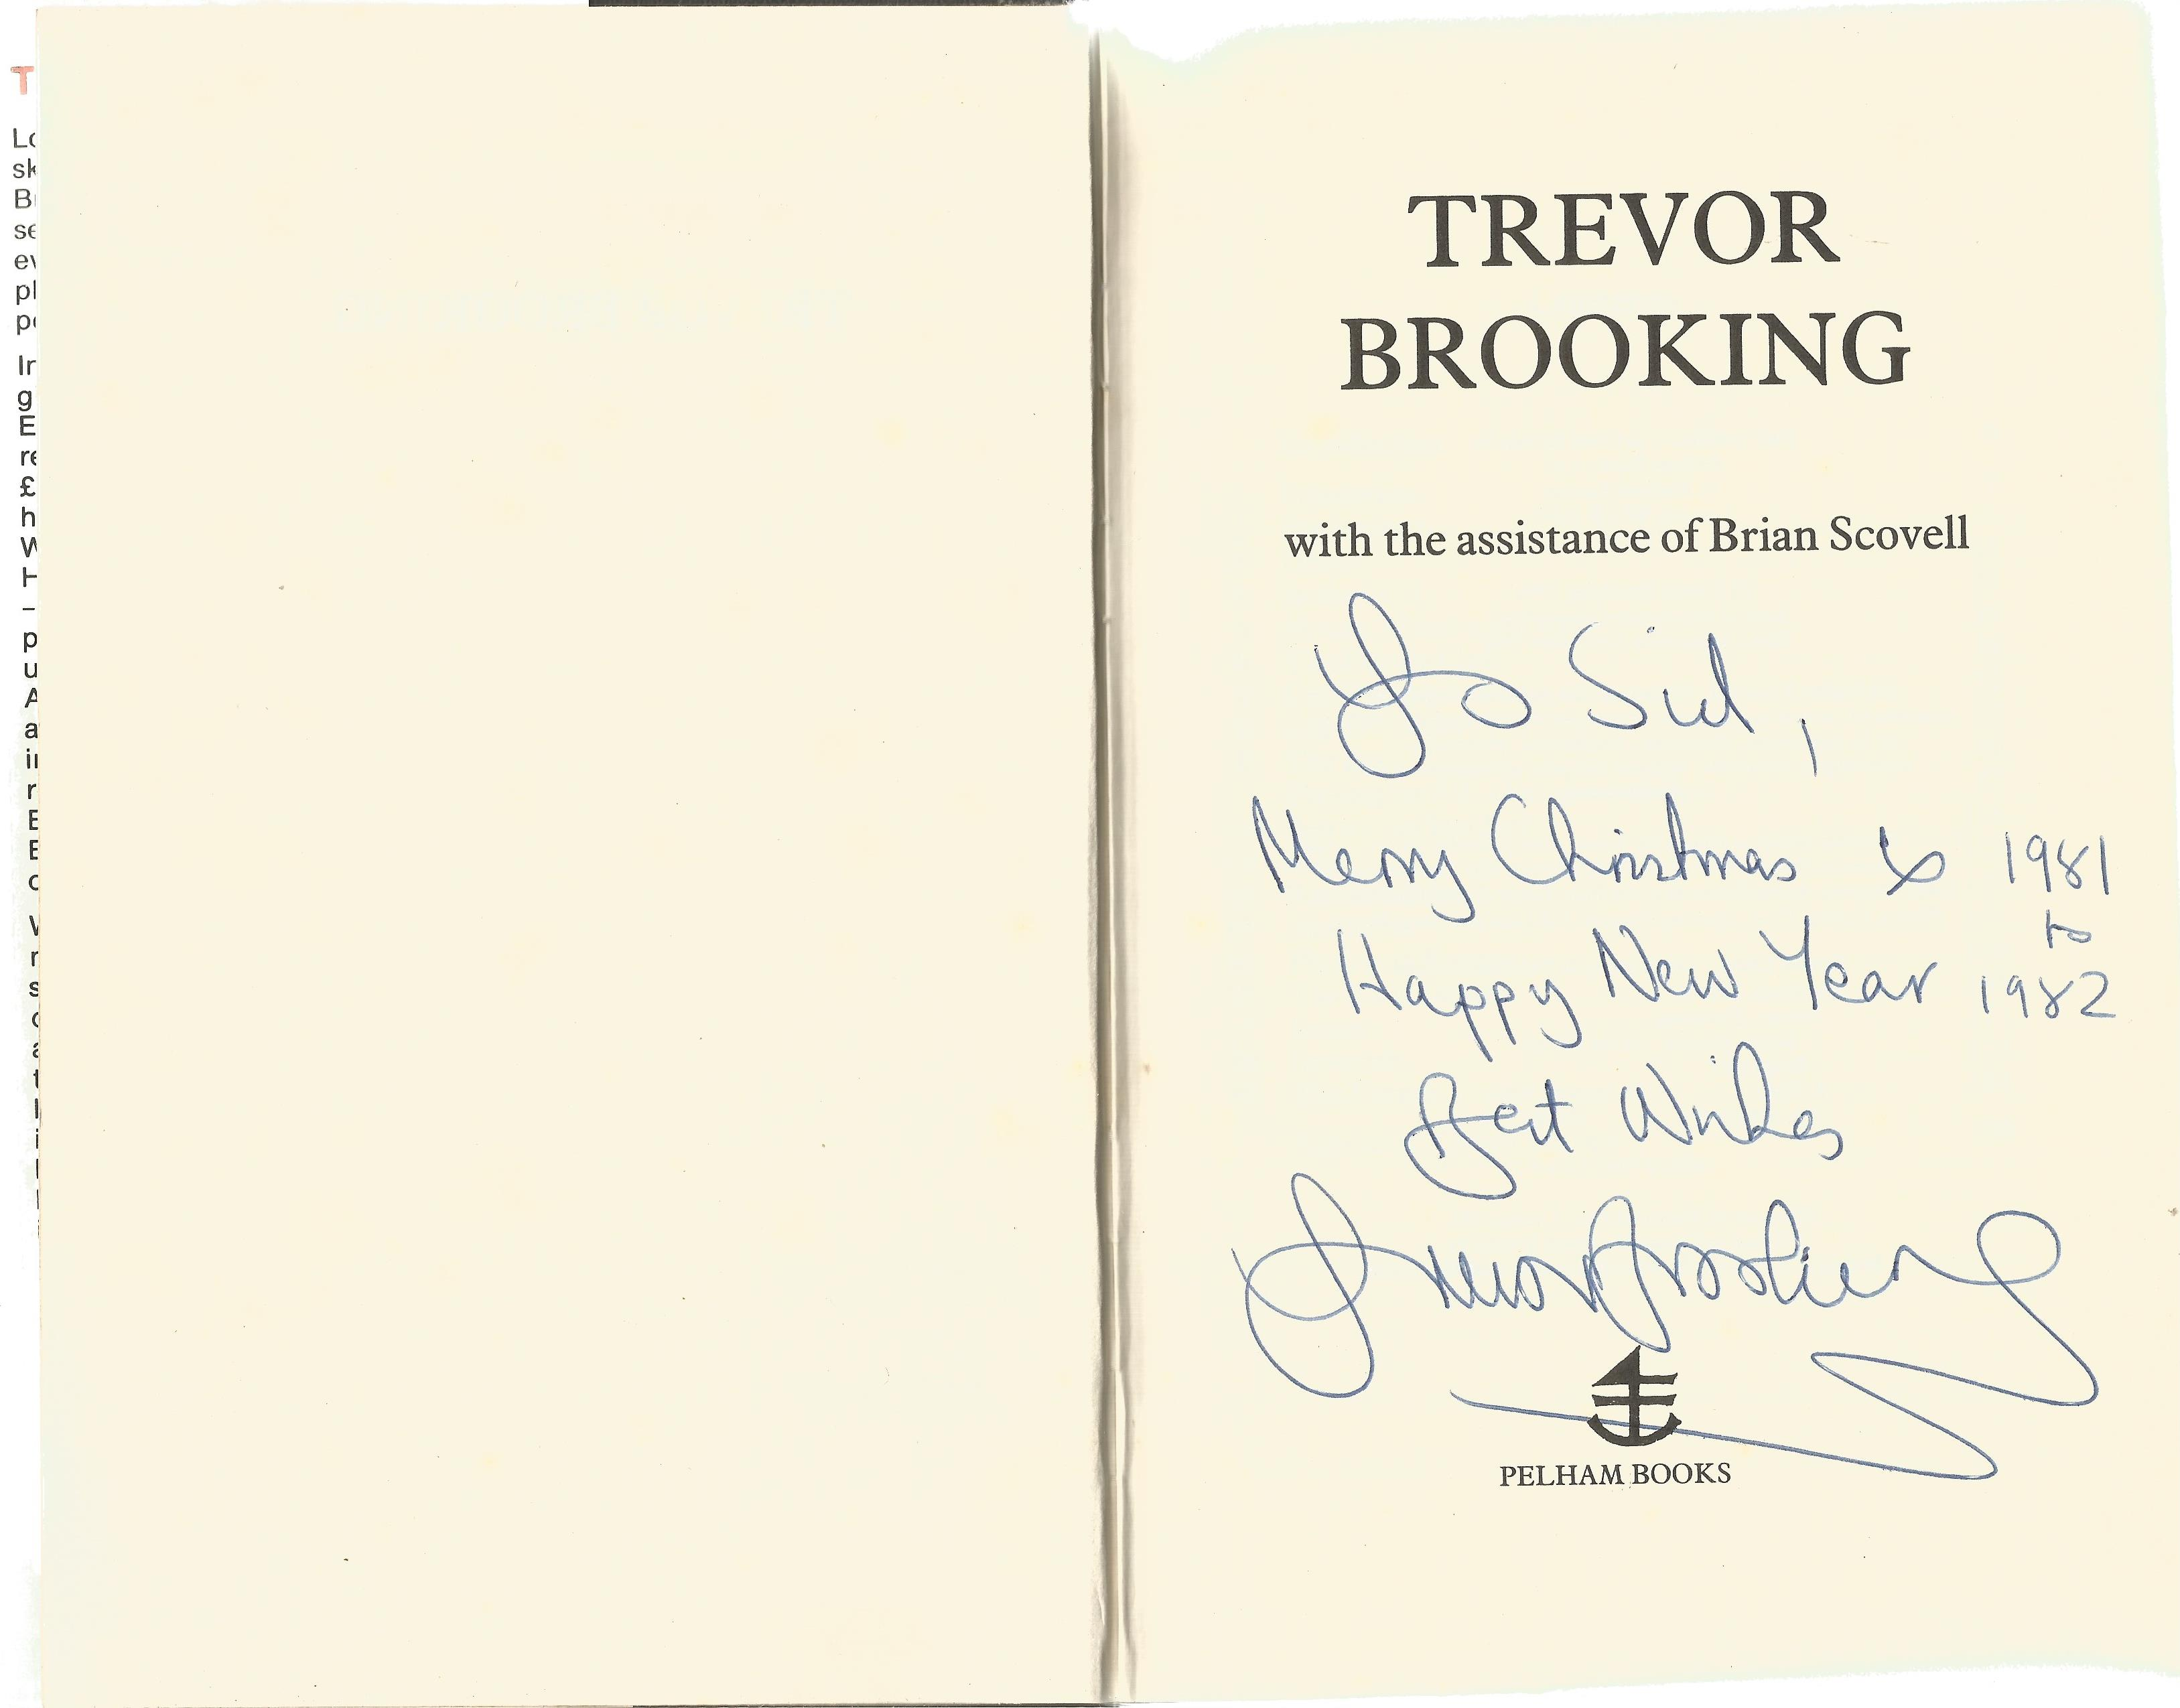 Trevor Brooking Hardback Book An Autobiography 1981 signed by the Author on the Title Page and dated - Image 2 of 2